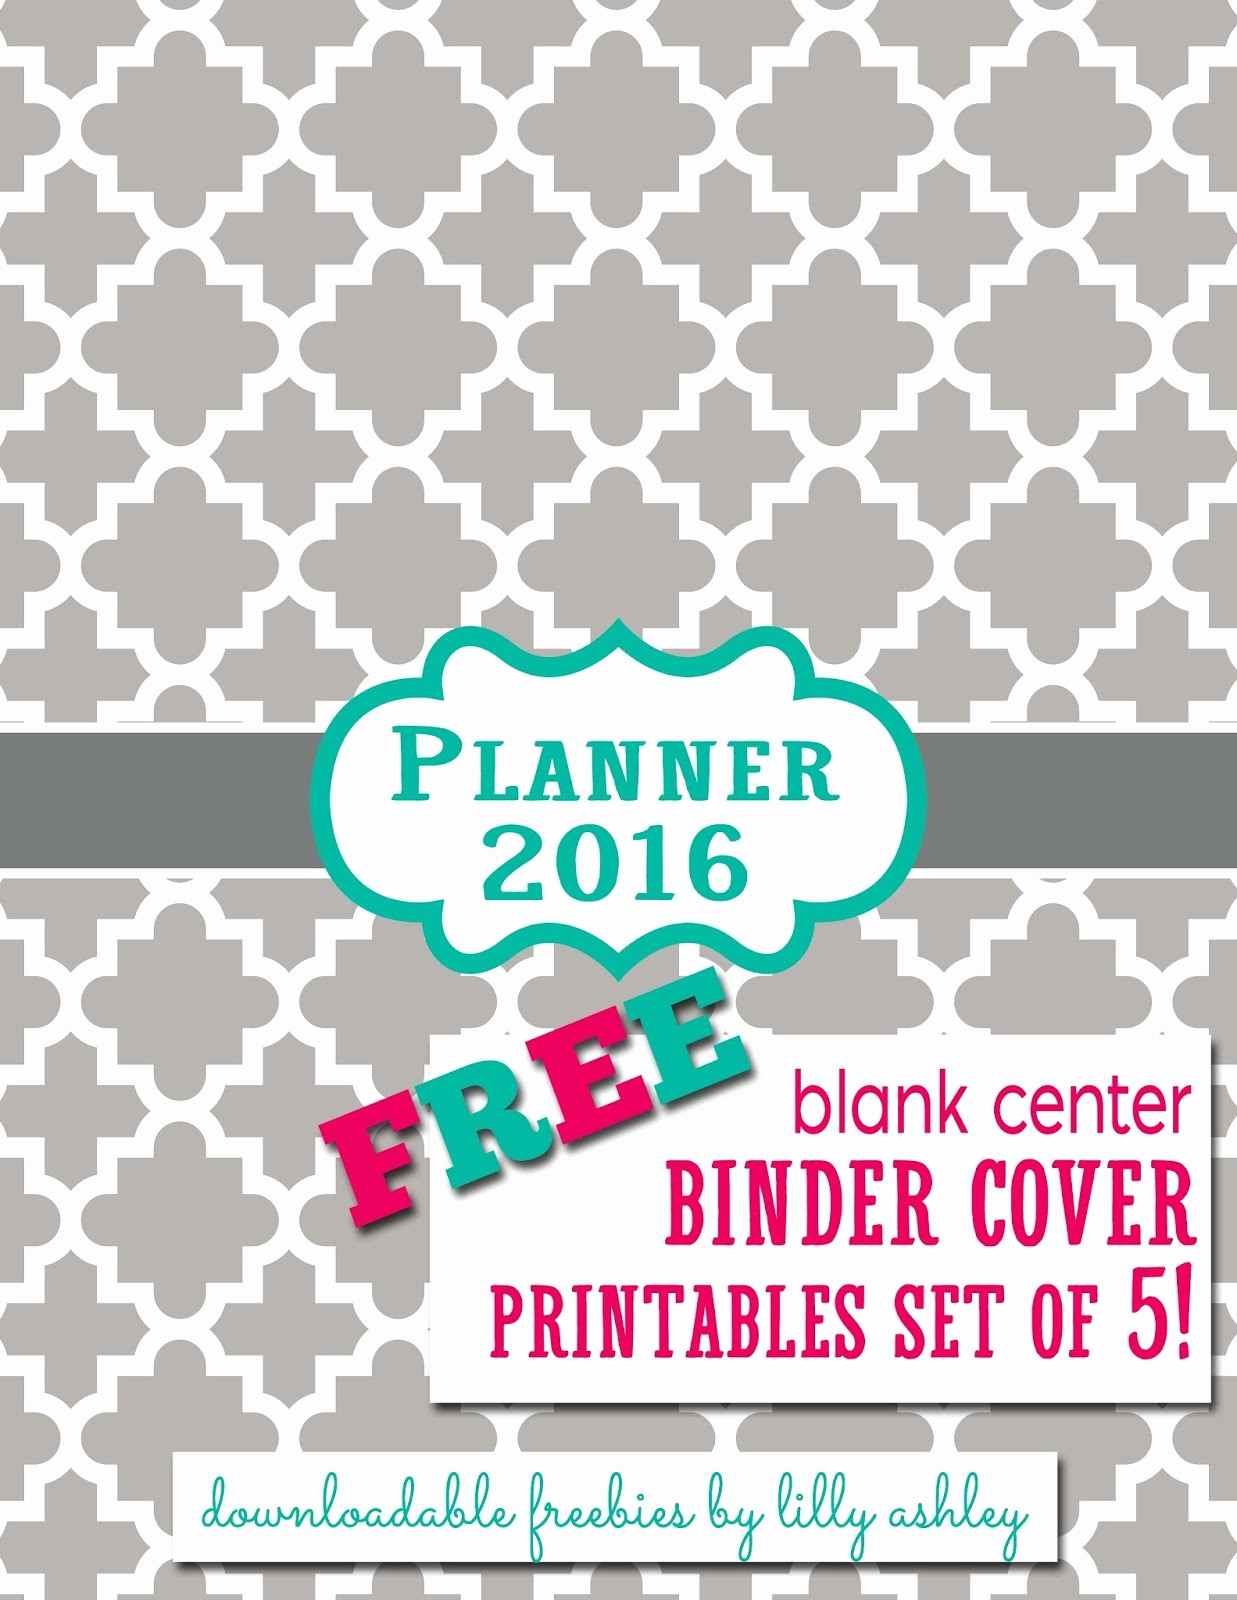 Free Binder Covers and Spines Awesome Make It Create by Lillyashley Freebie Downloads Free